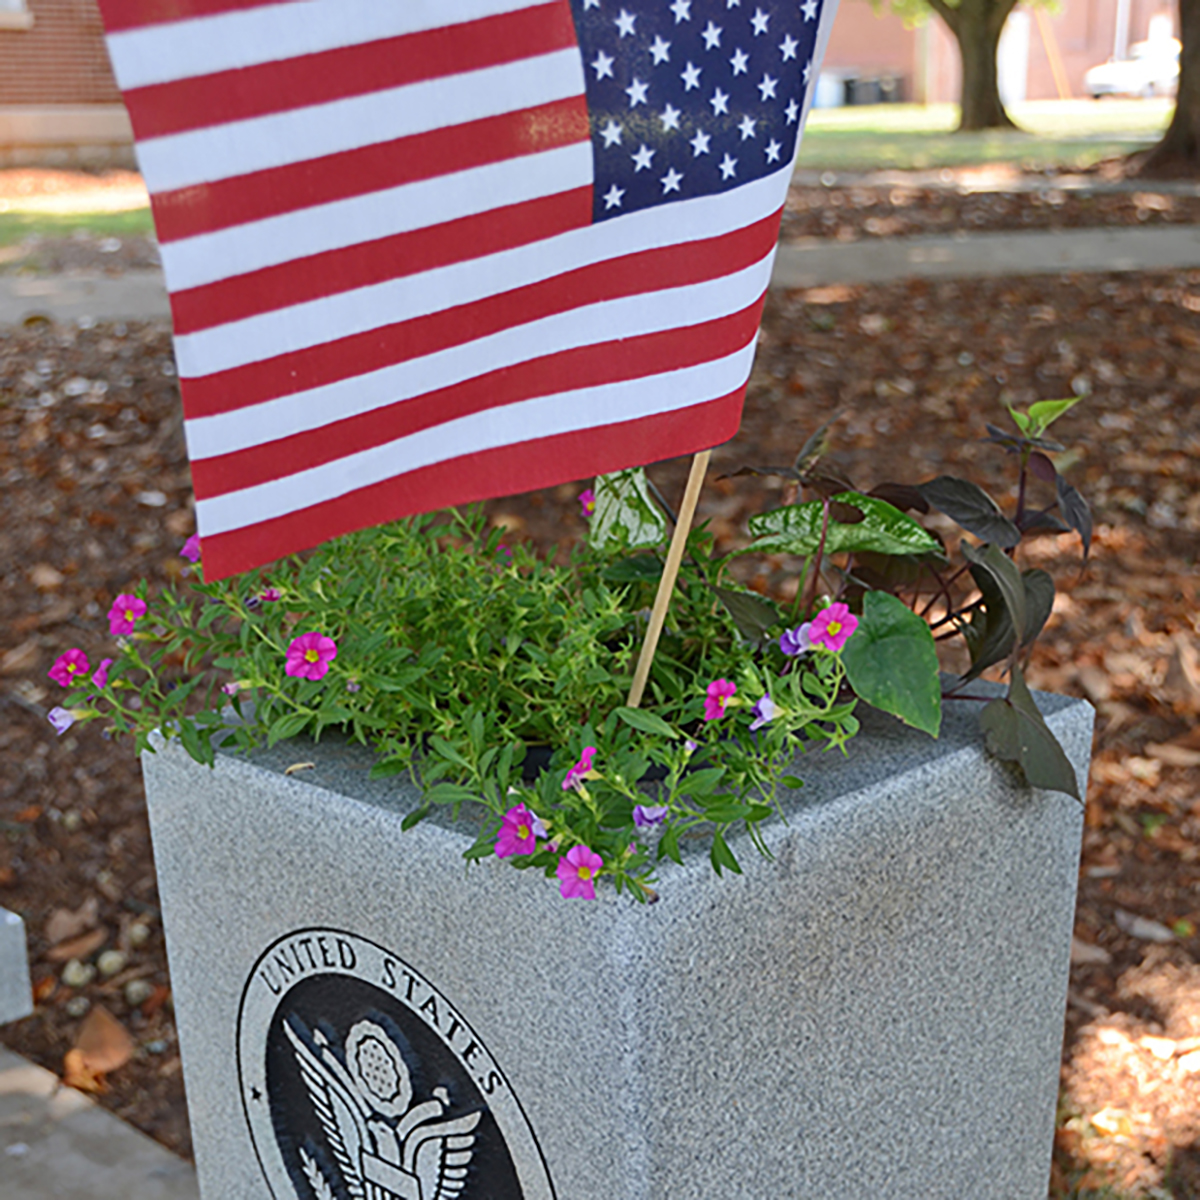 A U.S. flag sits atop flowers at the Military Memorial site outside the Tom H. Jackson Building on the MTSU campus. (MTSU file photo by Randy Weiler)